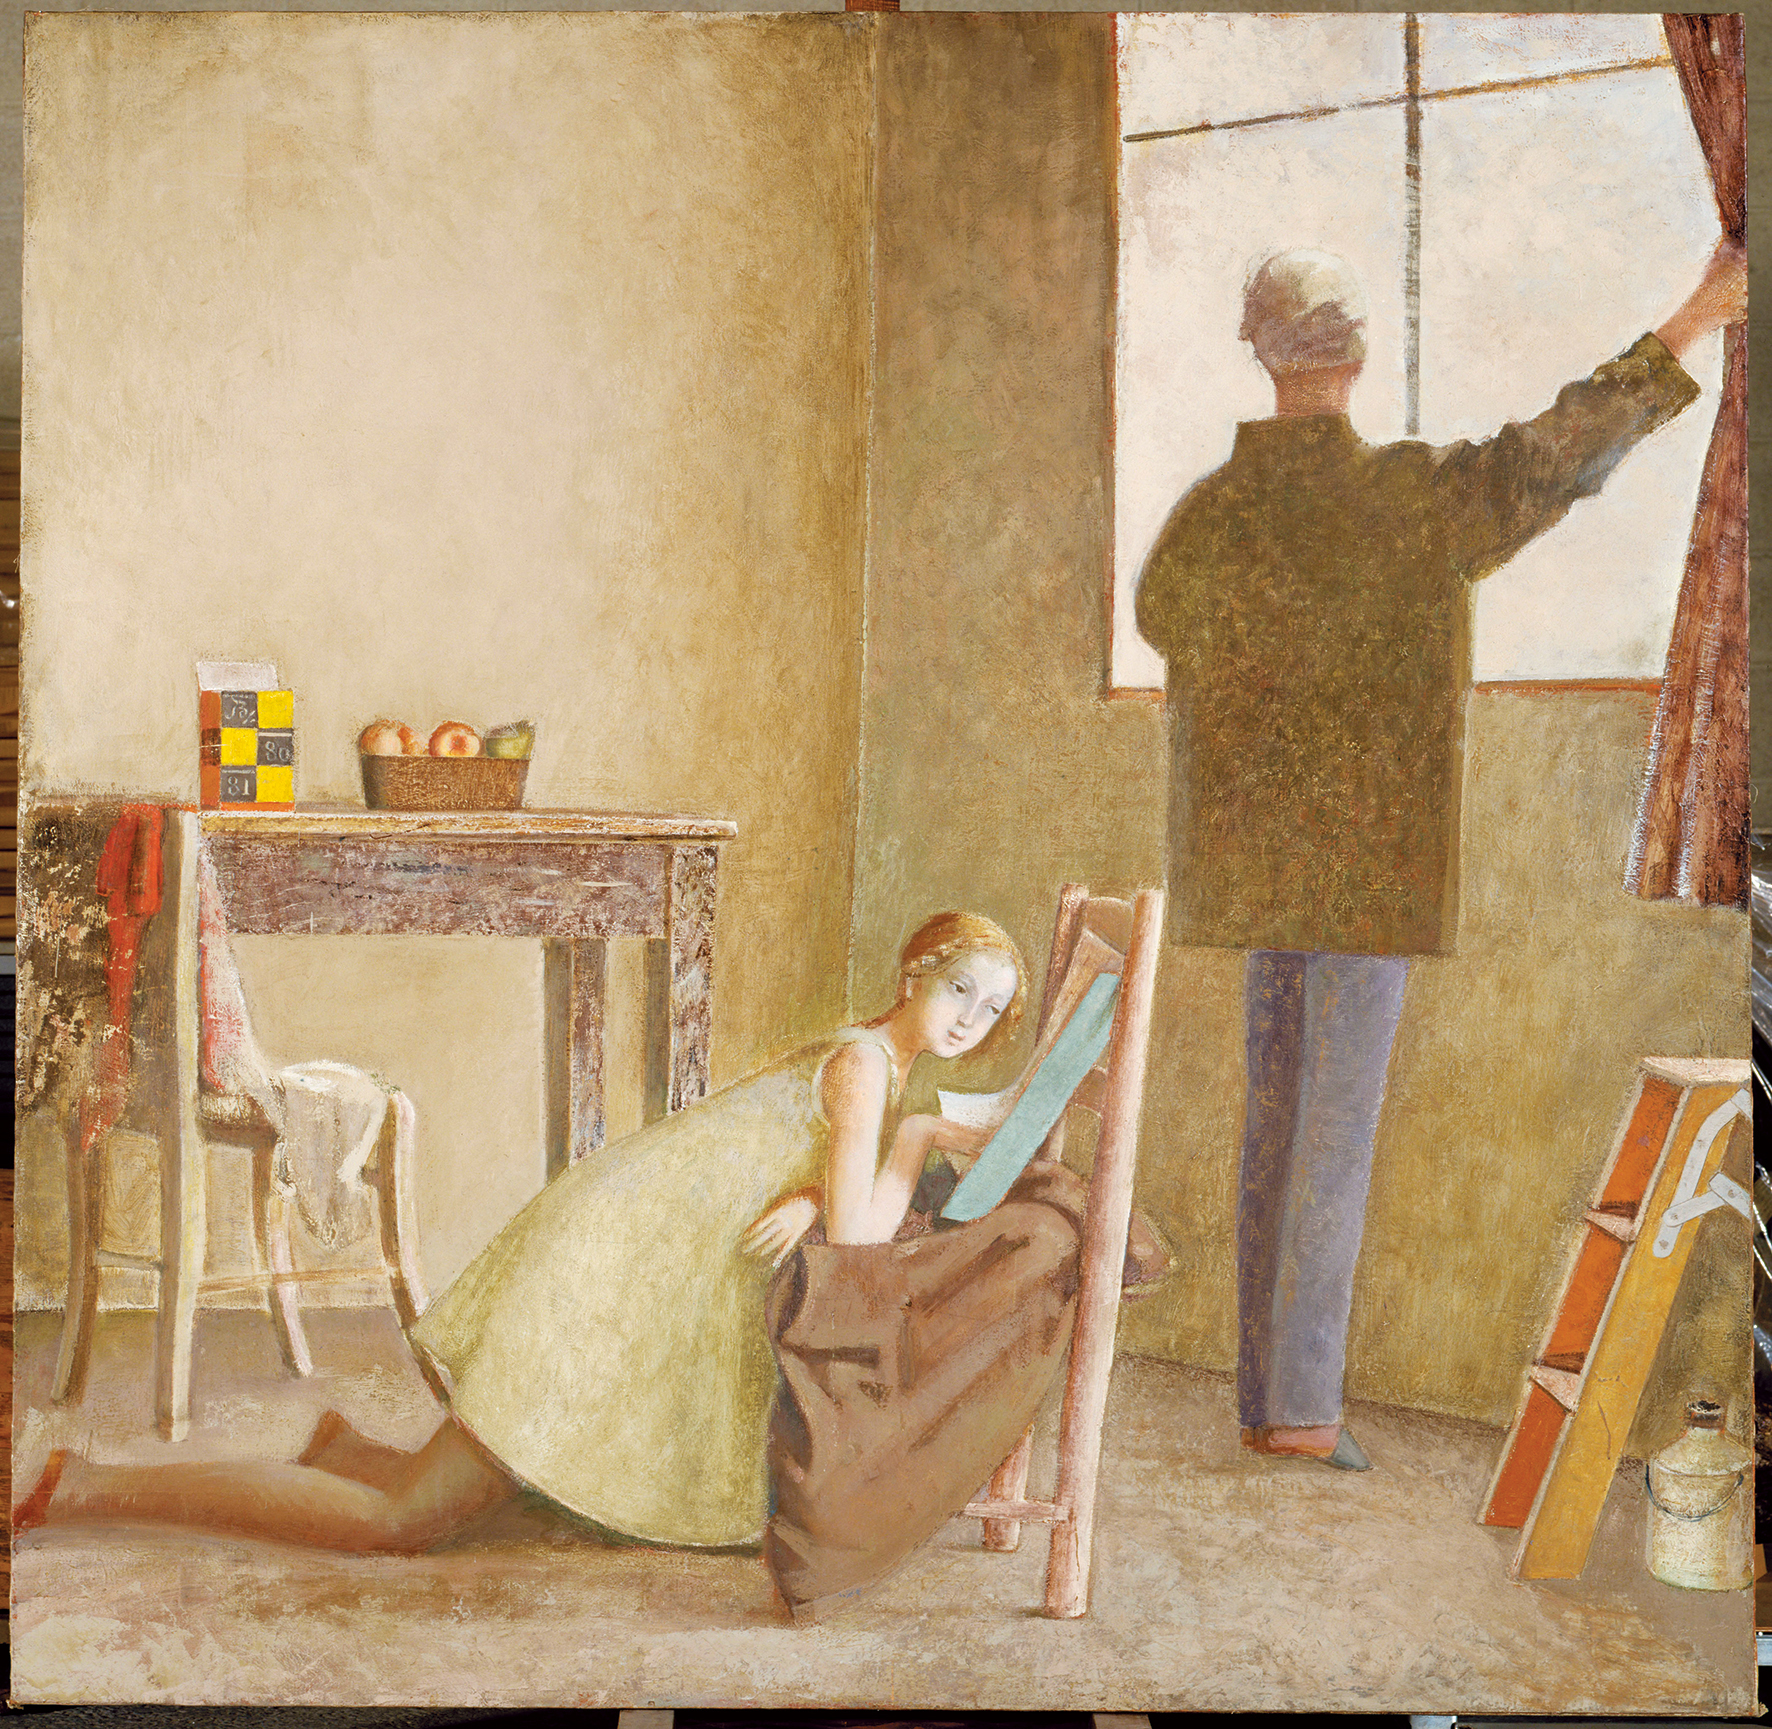 Balthus un artista enigmatico in due mostre a roma for Balthus alice dans le miroir